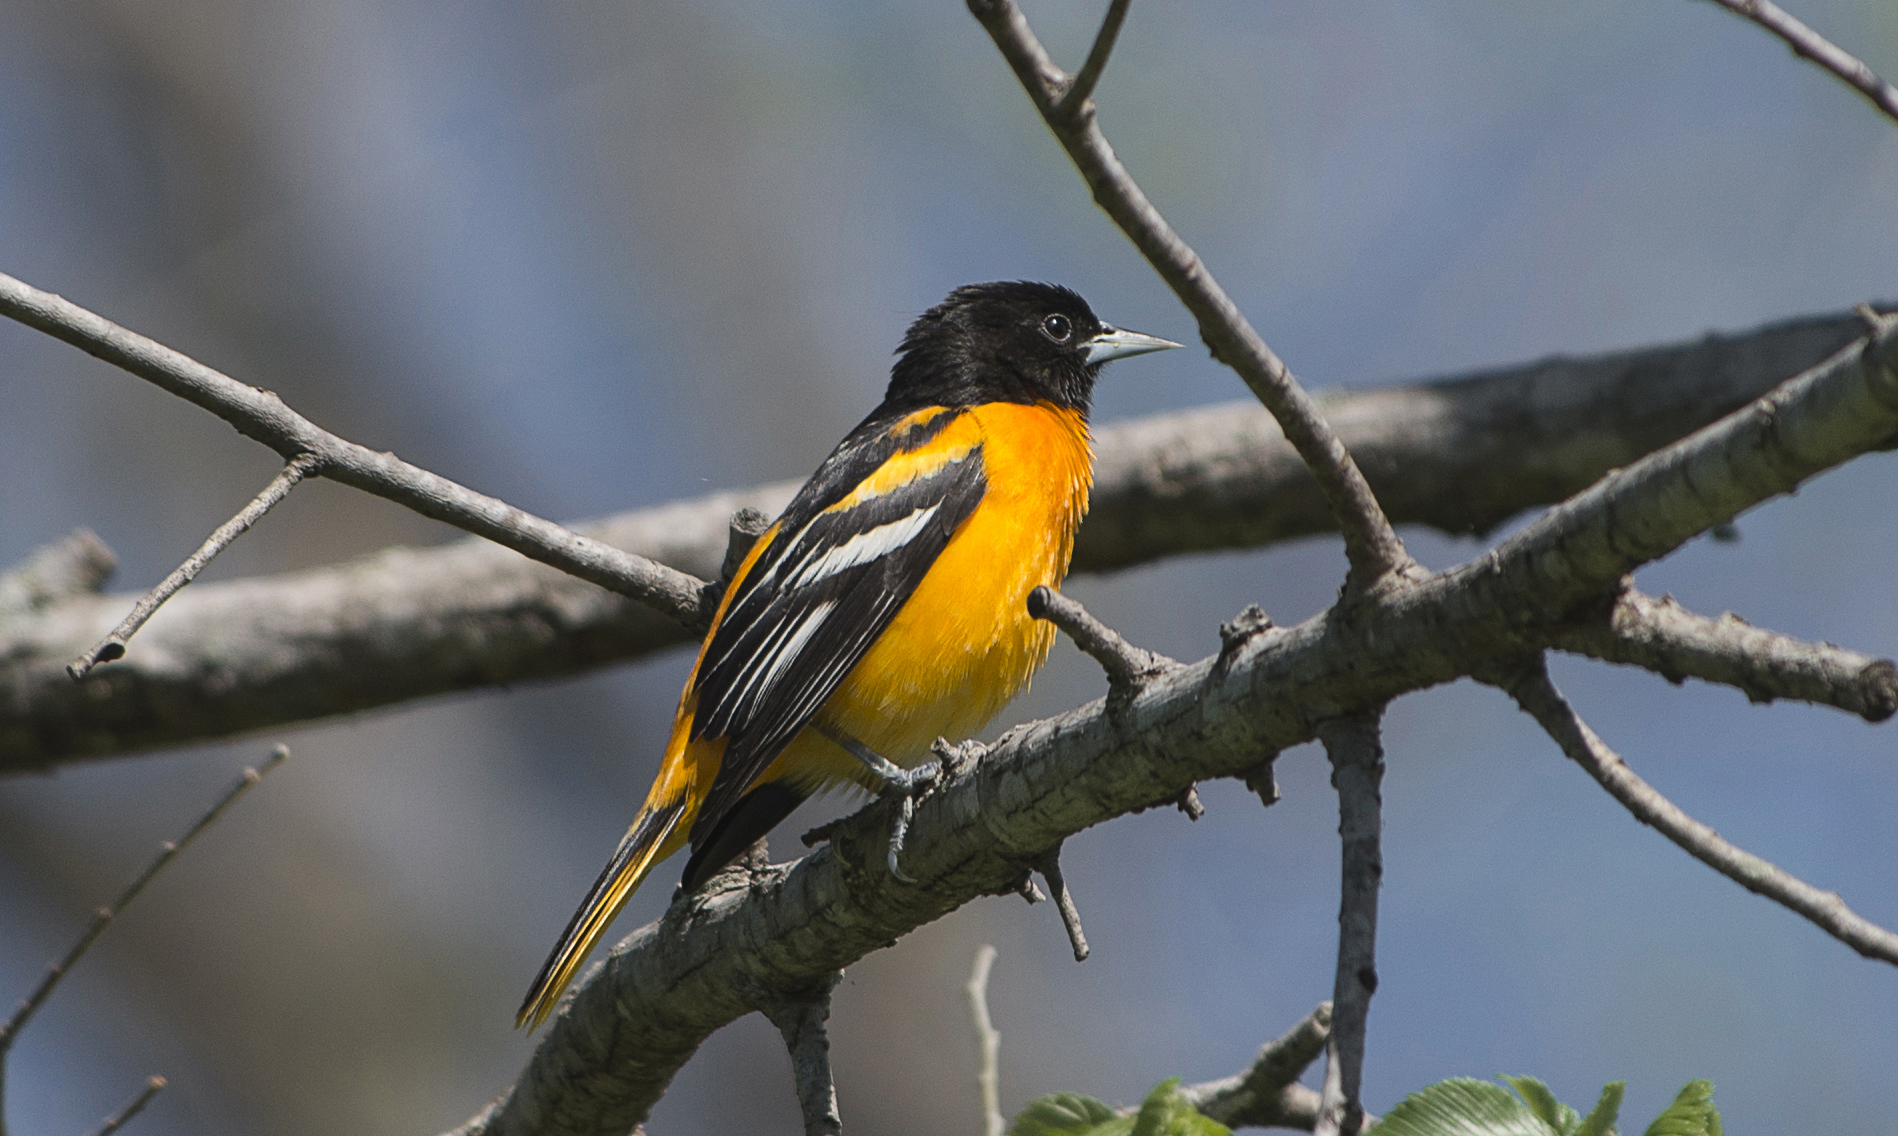 10 states could lose state birds the audubon birds climate